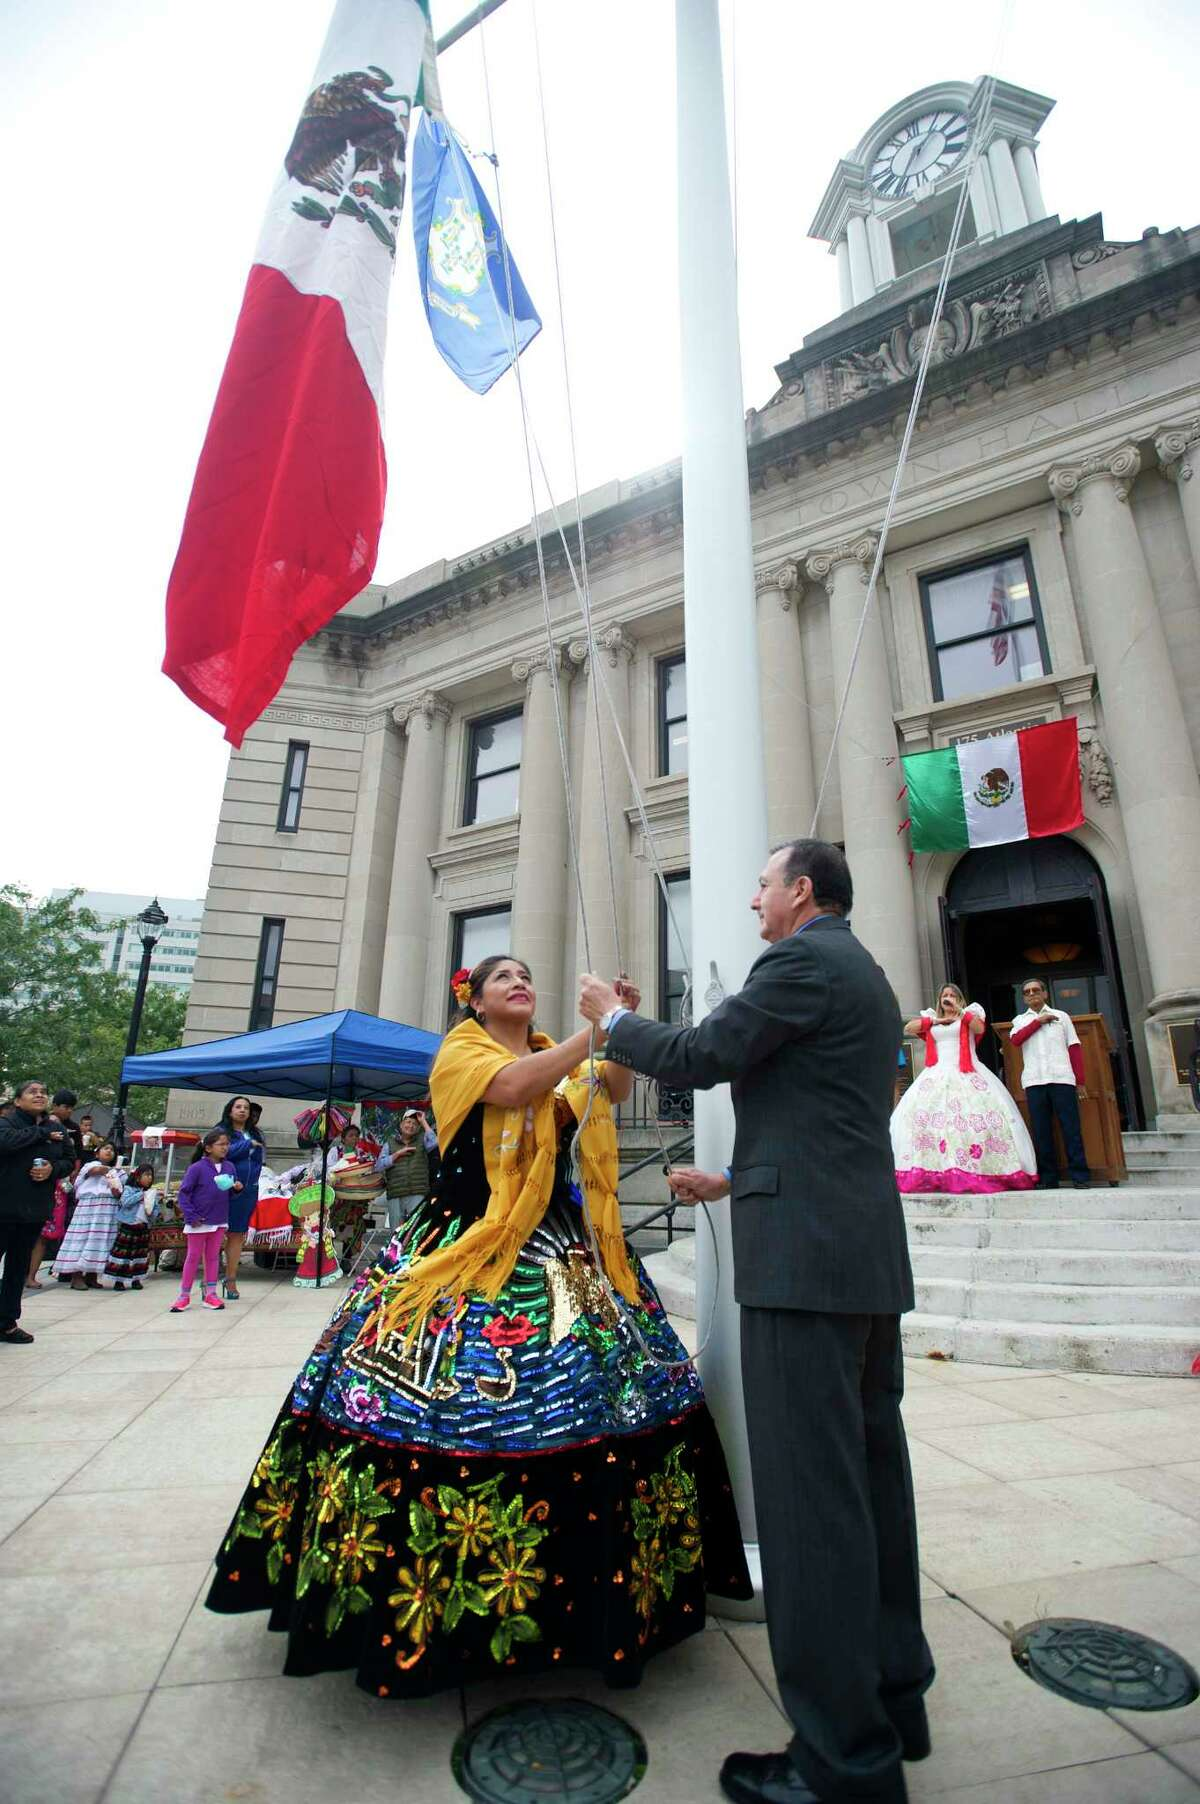 Pilar Blanco, left, and Rene Telez raise the Mexican flag during the Hispanic Heritage Month celebration outside Old Town Hall in downtown Stamford, Conn. on Sunday, Sept. 23, 2018. The celebration, organized by the Latino Foundation of Stamford, included the raising of the Mexican flag and celebrated the 208th anniversary of Mexican independence.